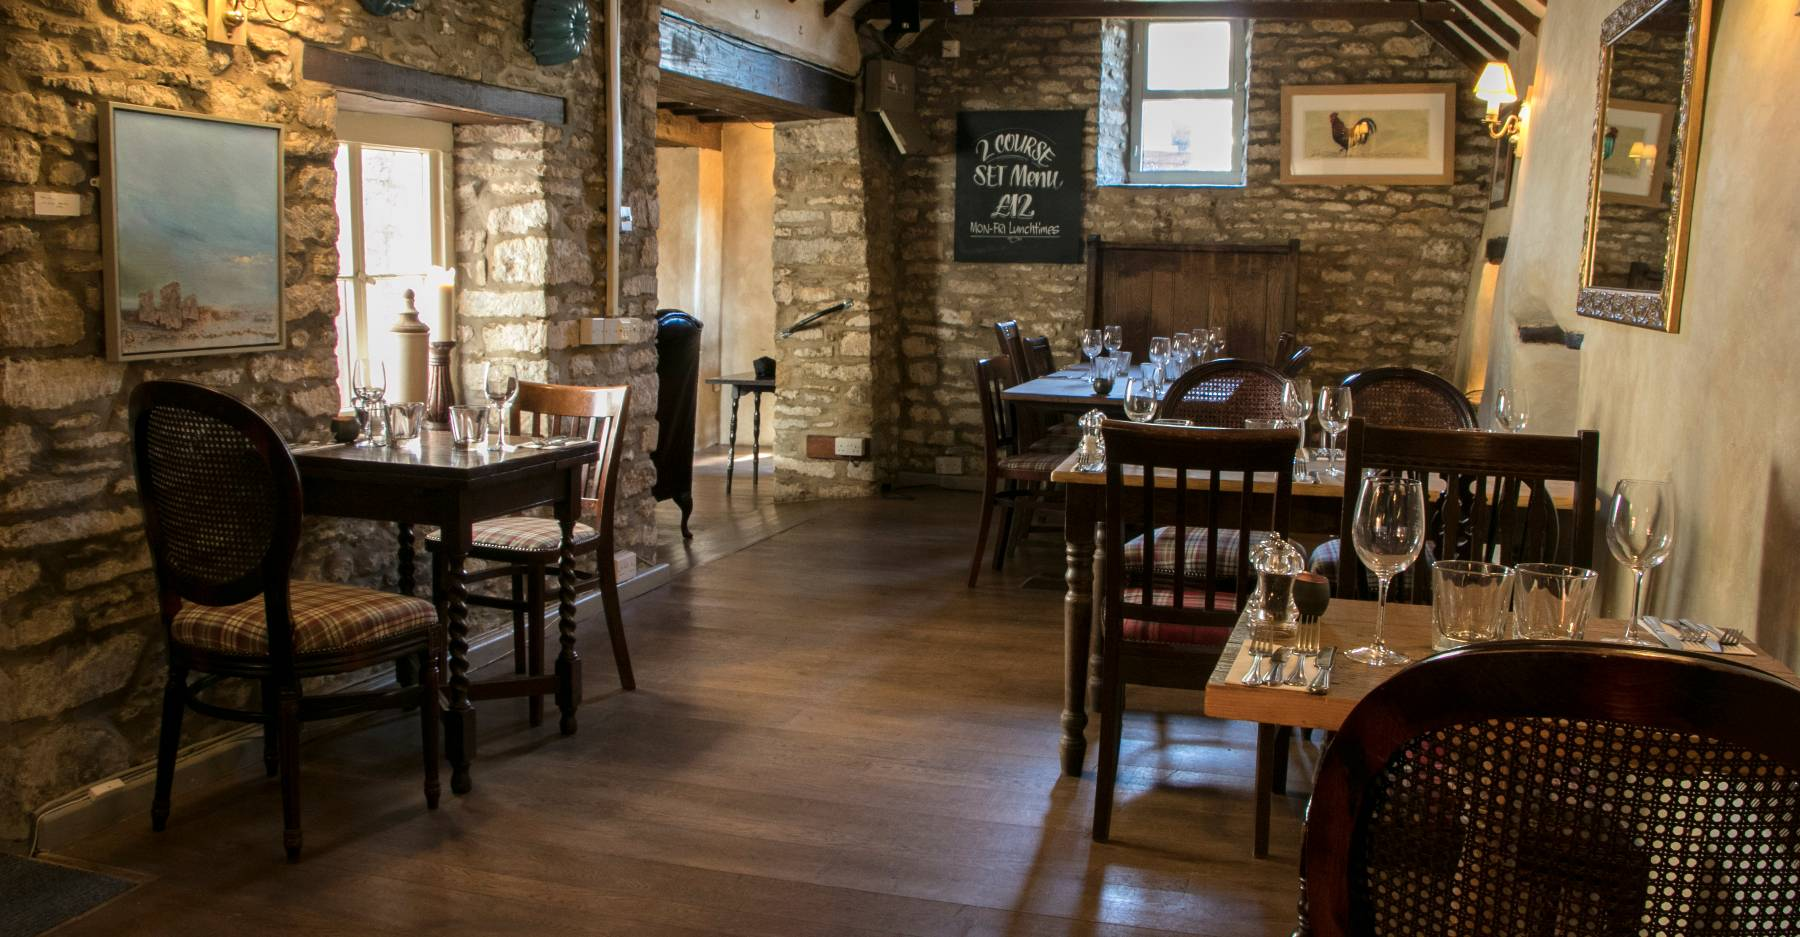 Rattlebone Inn Functions The Ram Pub Company Pub And Drinks In Malmesbury Wiltshire Pubs